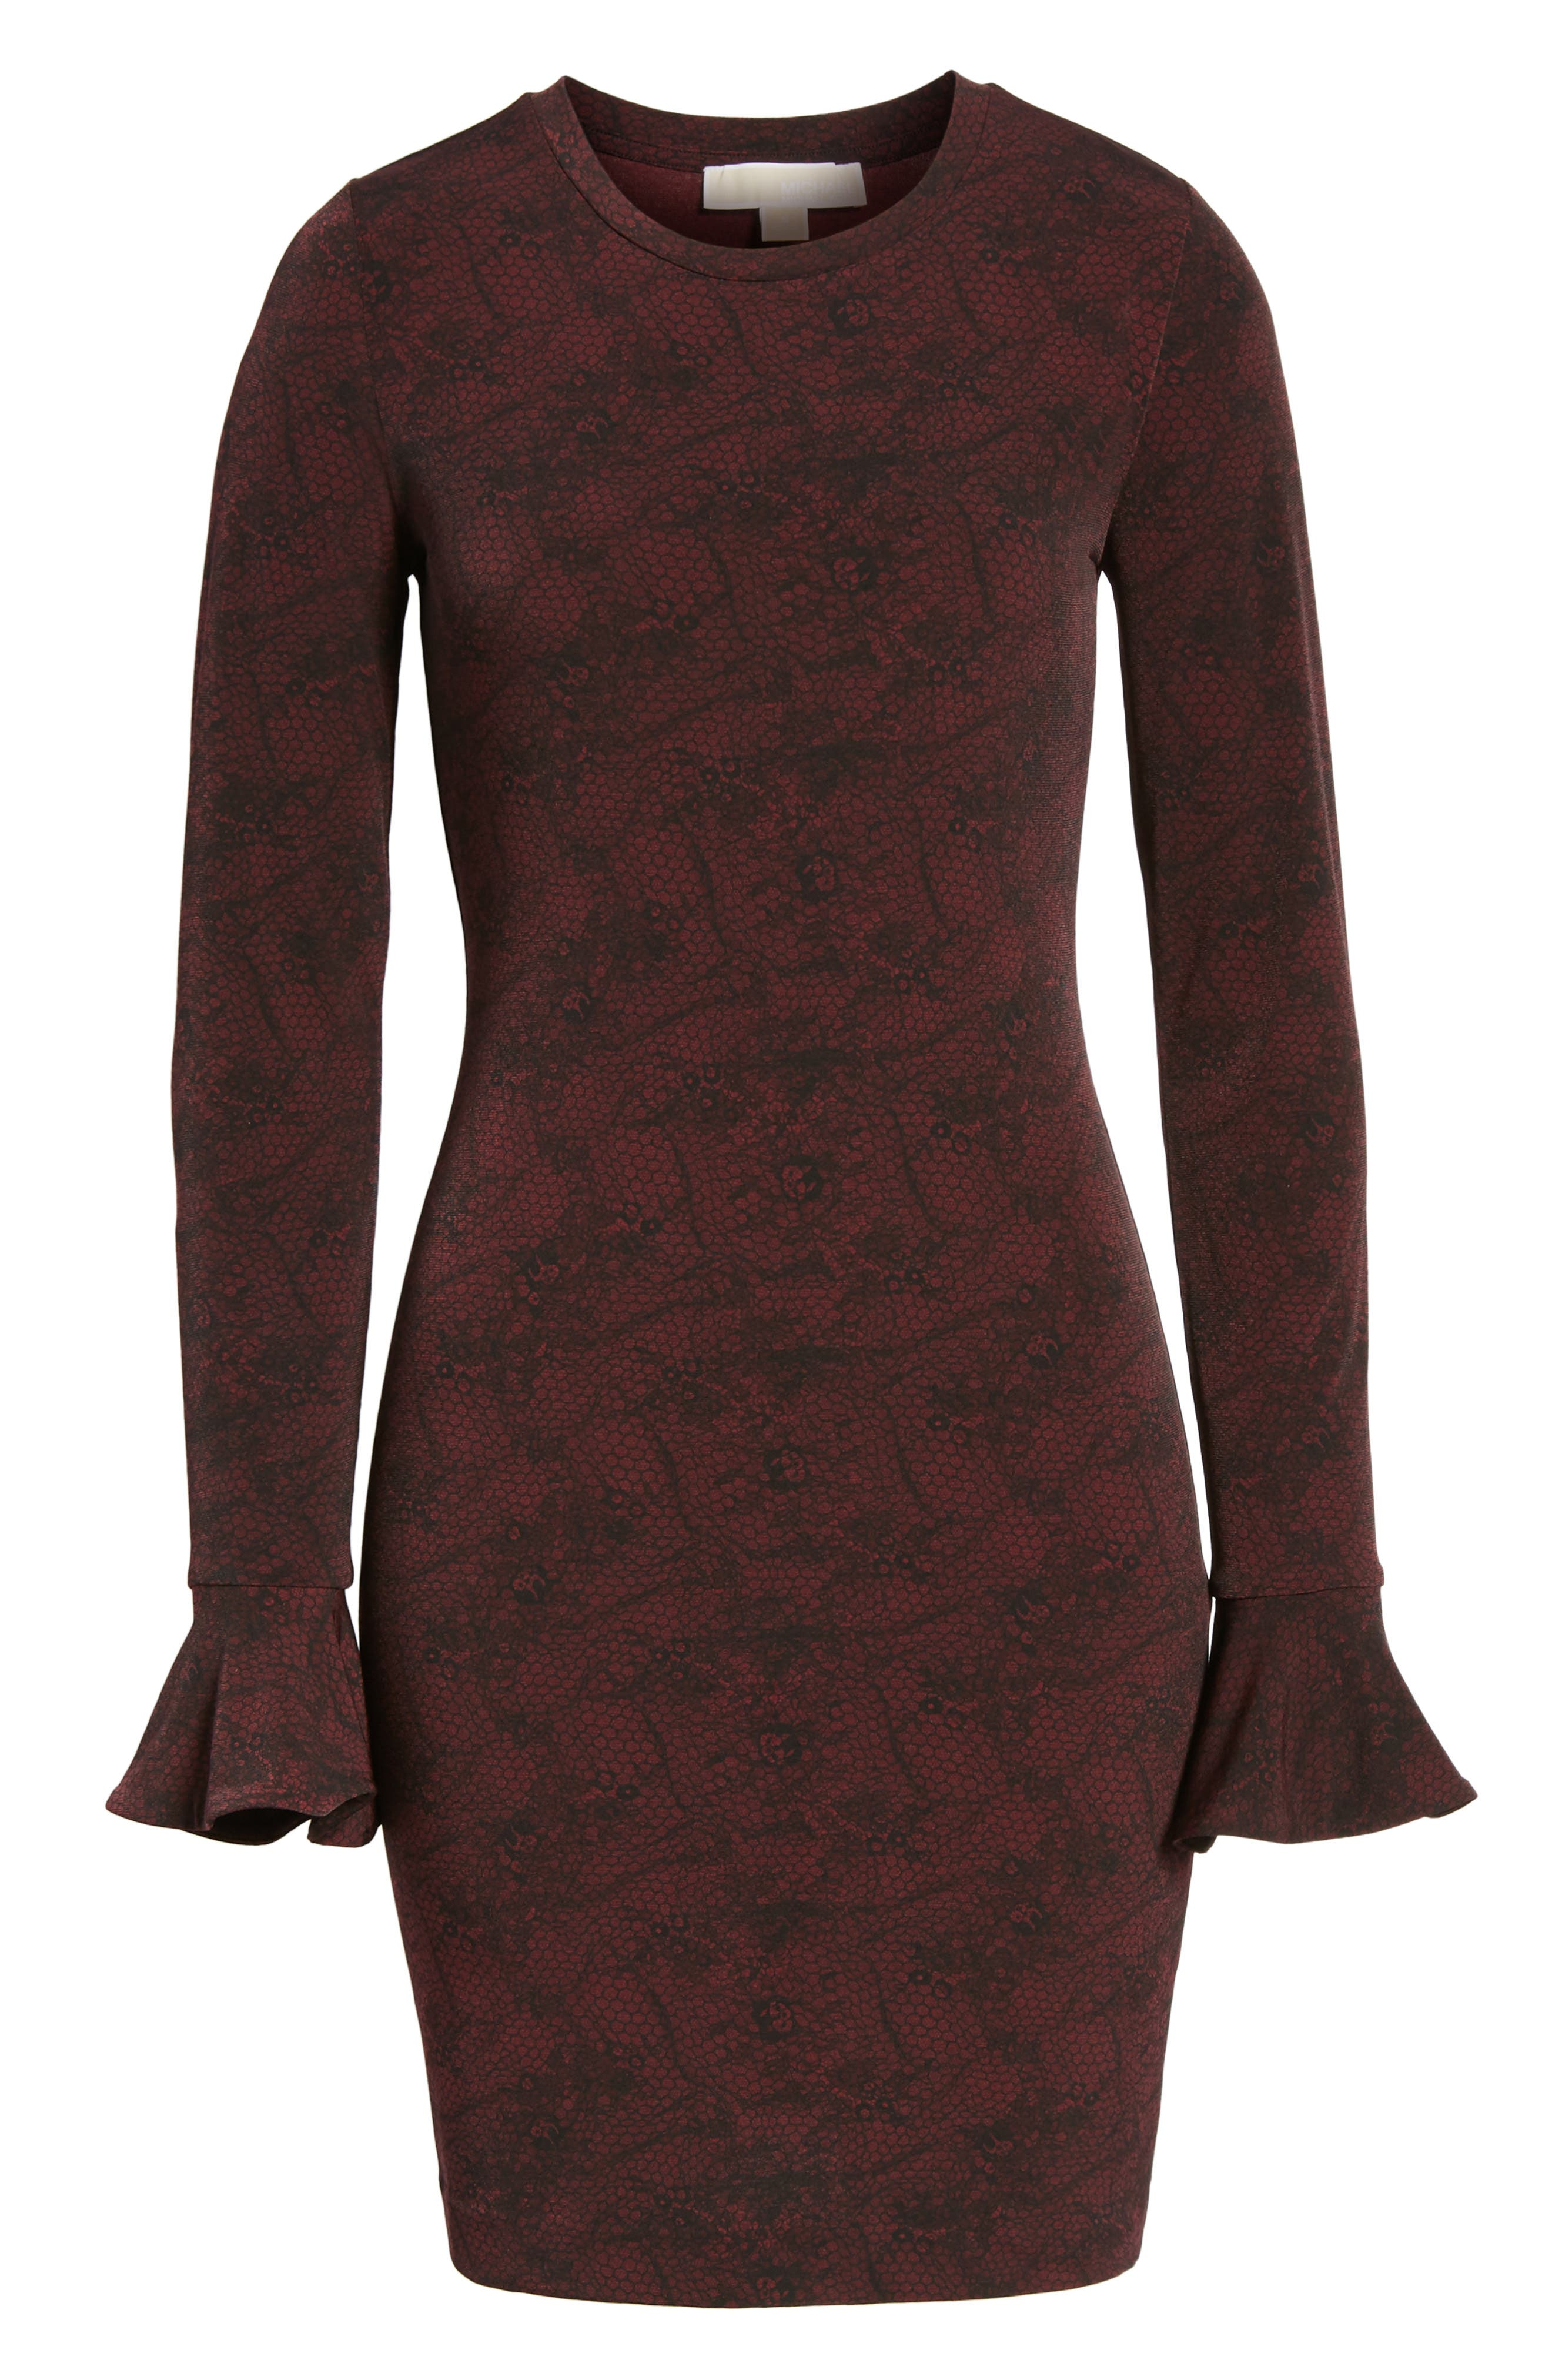 Floral Mesh Dress,                             Alternate thumbnail 6, color,                             Merlot/Black